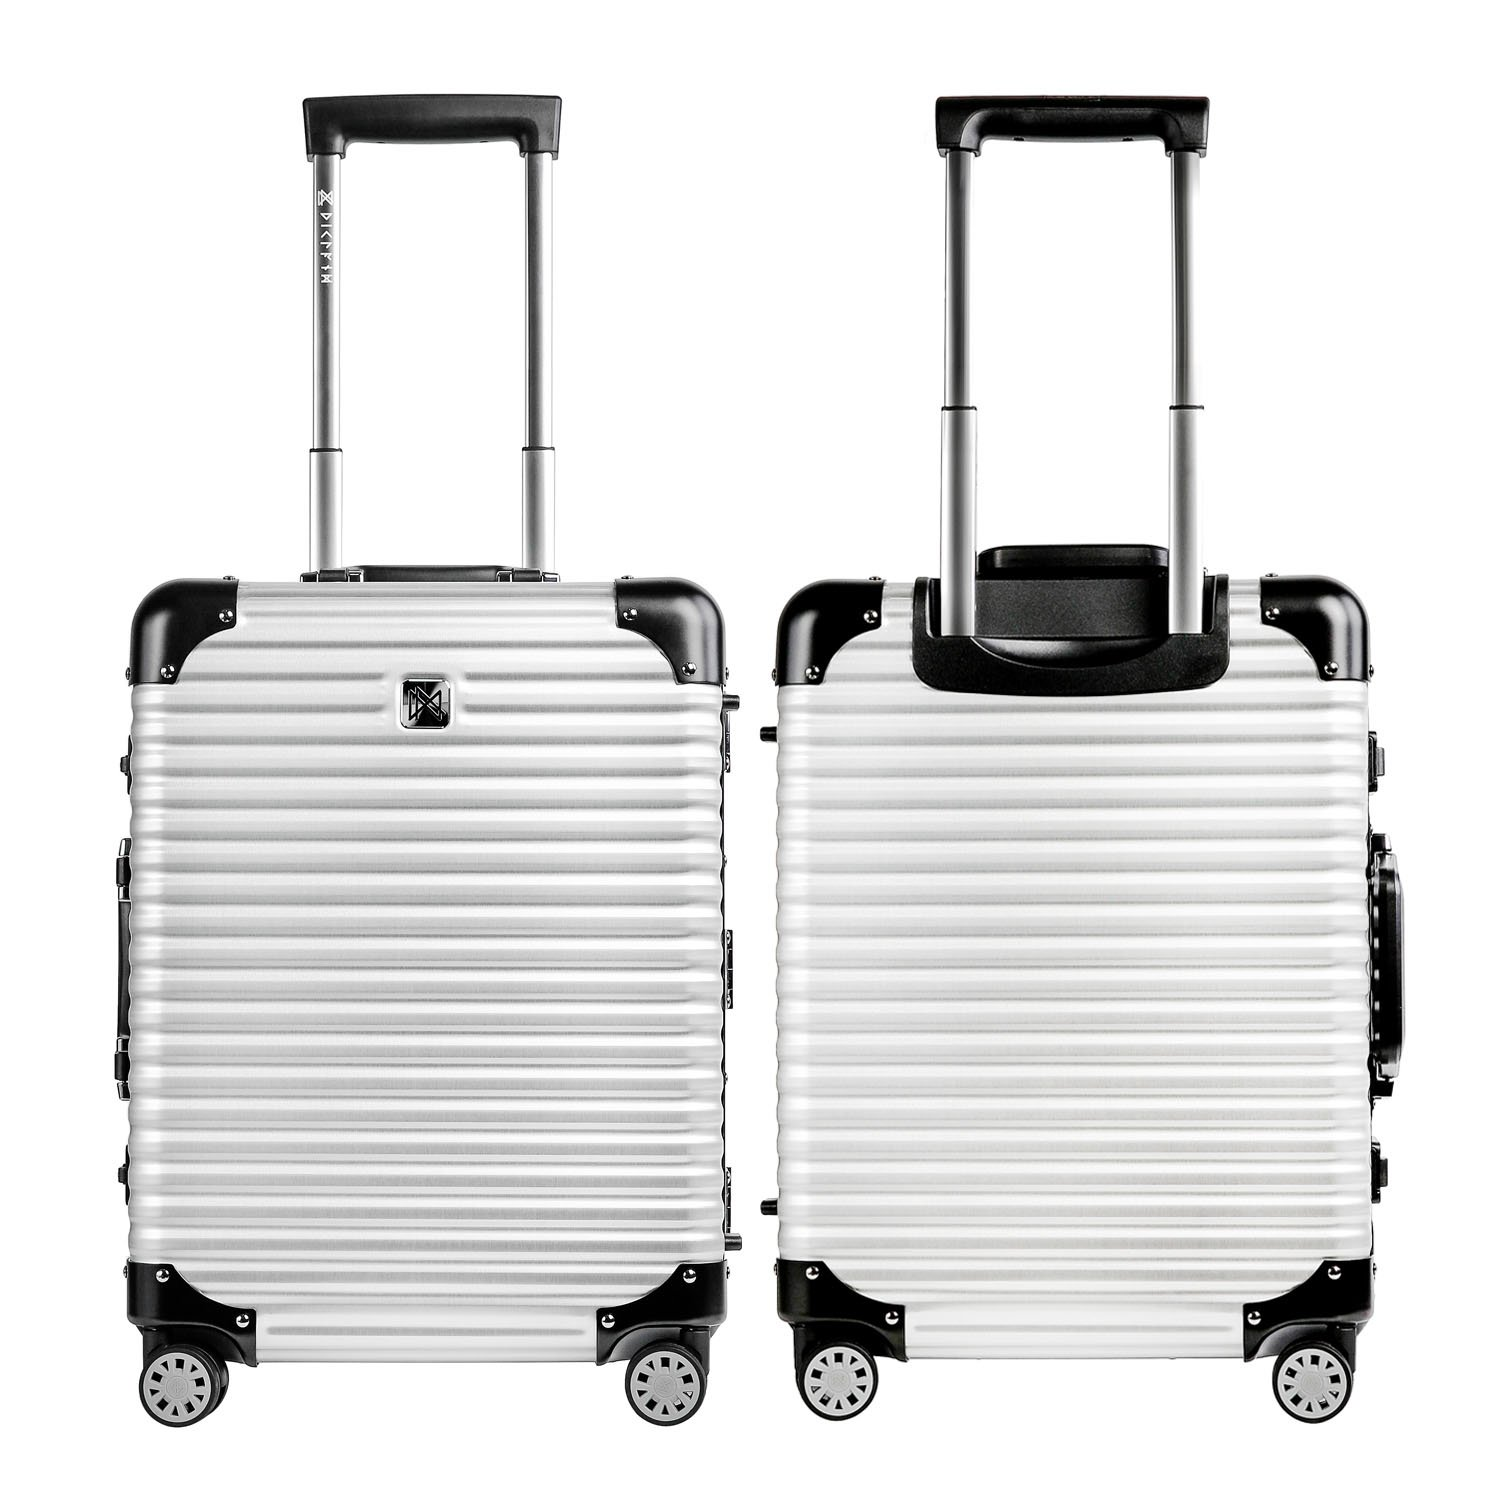 LANZZO Aluminum Magnesium Alloy Luggage with Spinner Wheels TSA Lock Approved Hardshell Travel Suitcase, 20inches, Silver by LANZZO (Image #4)